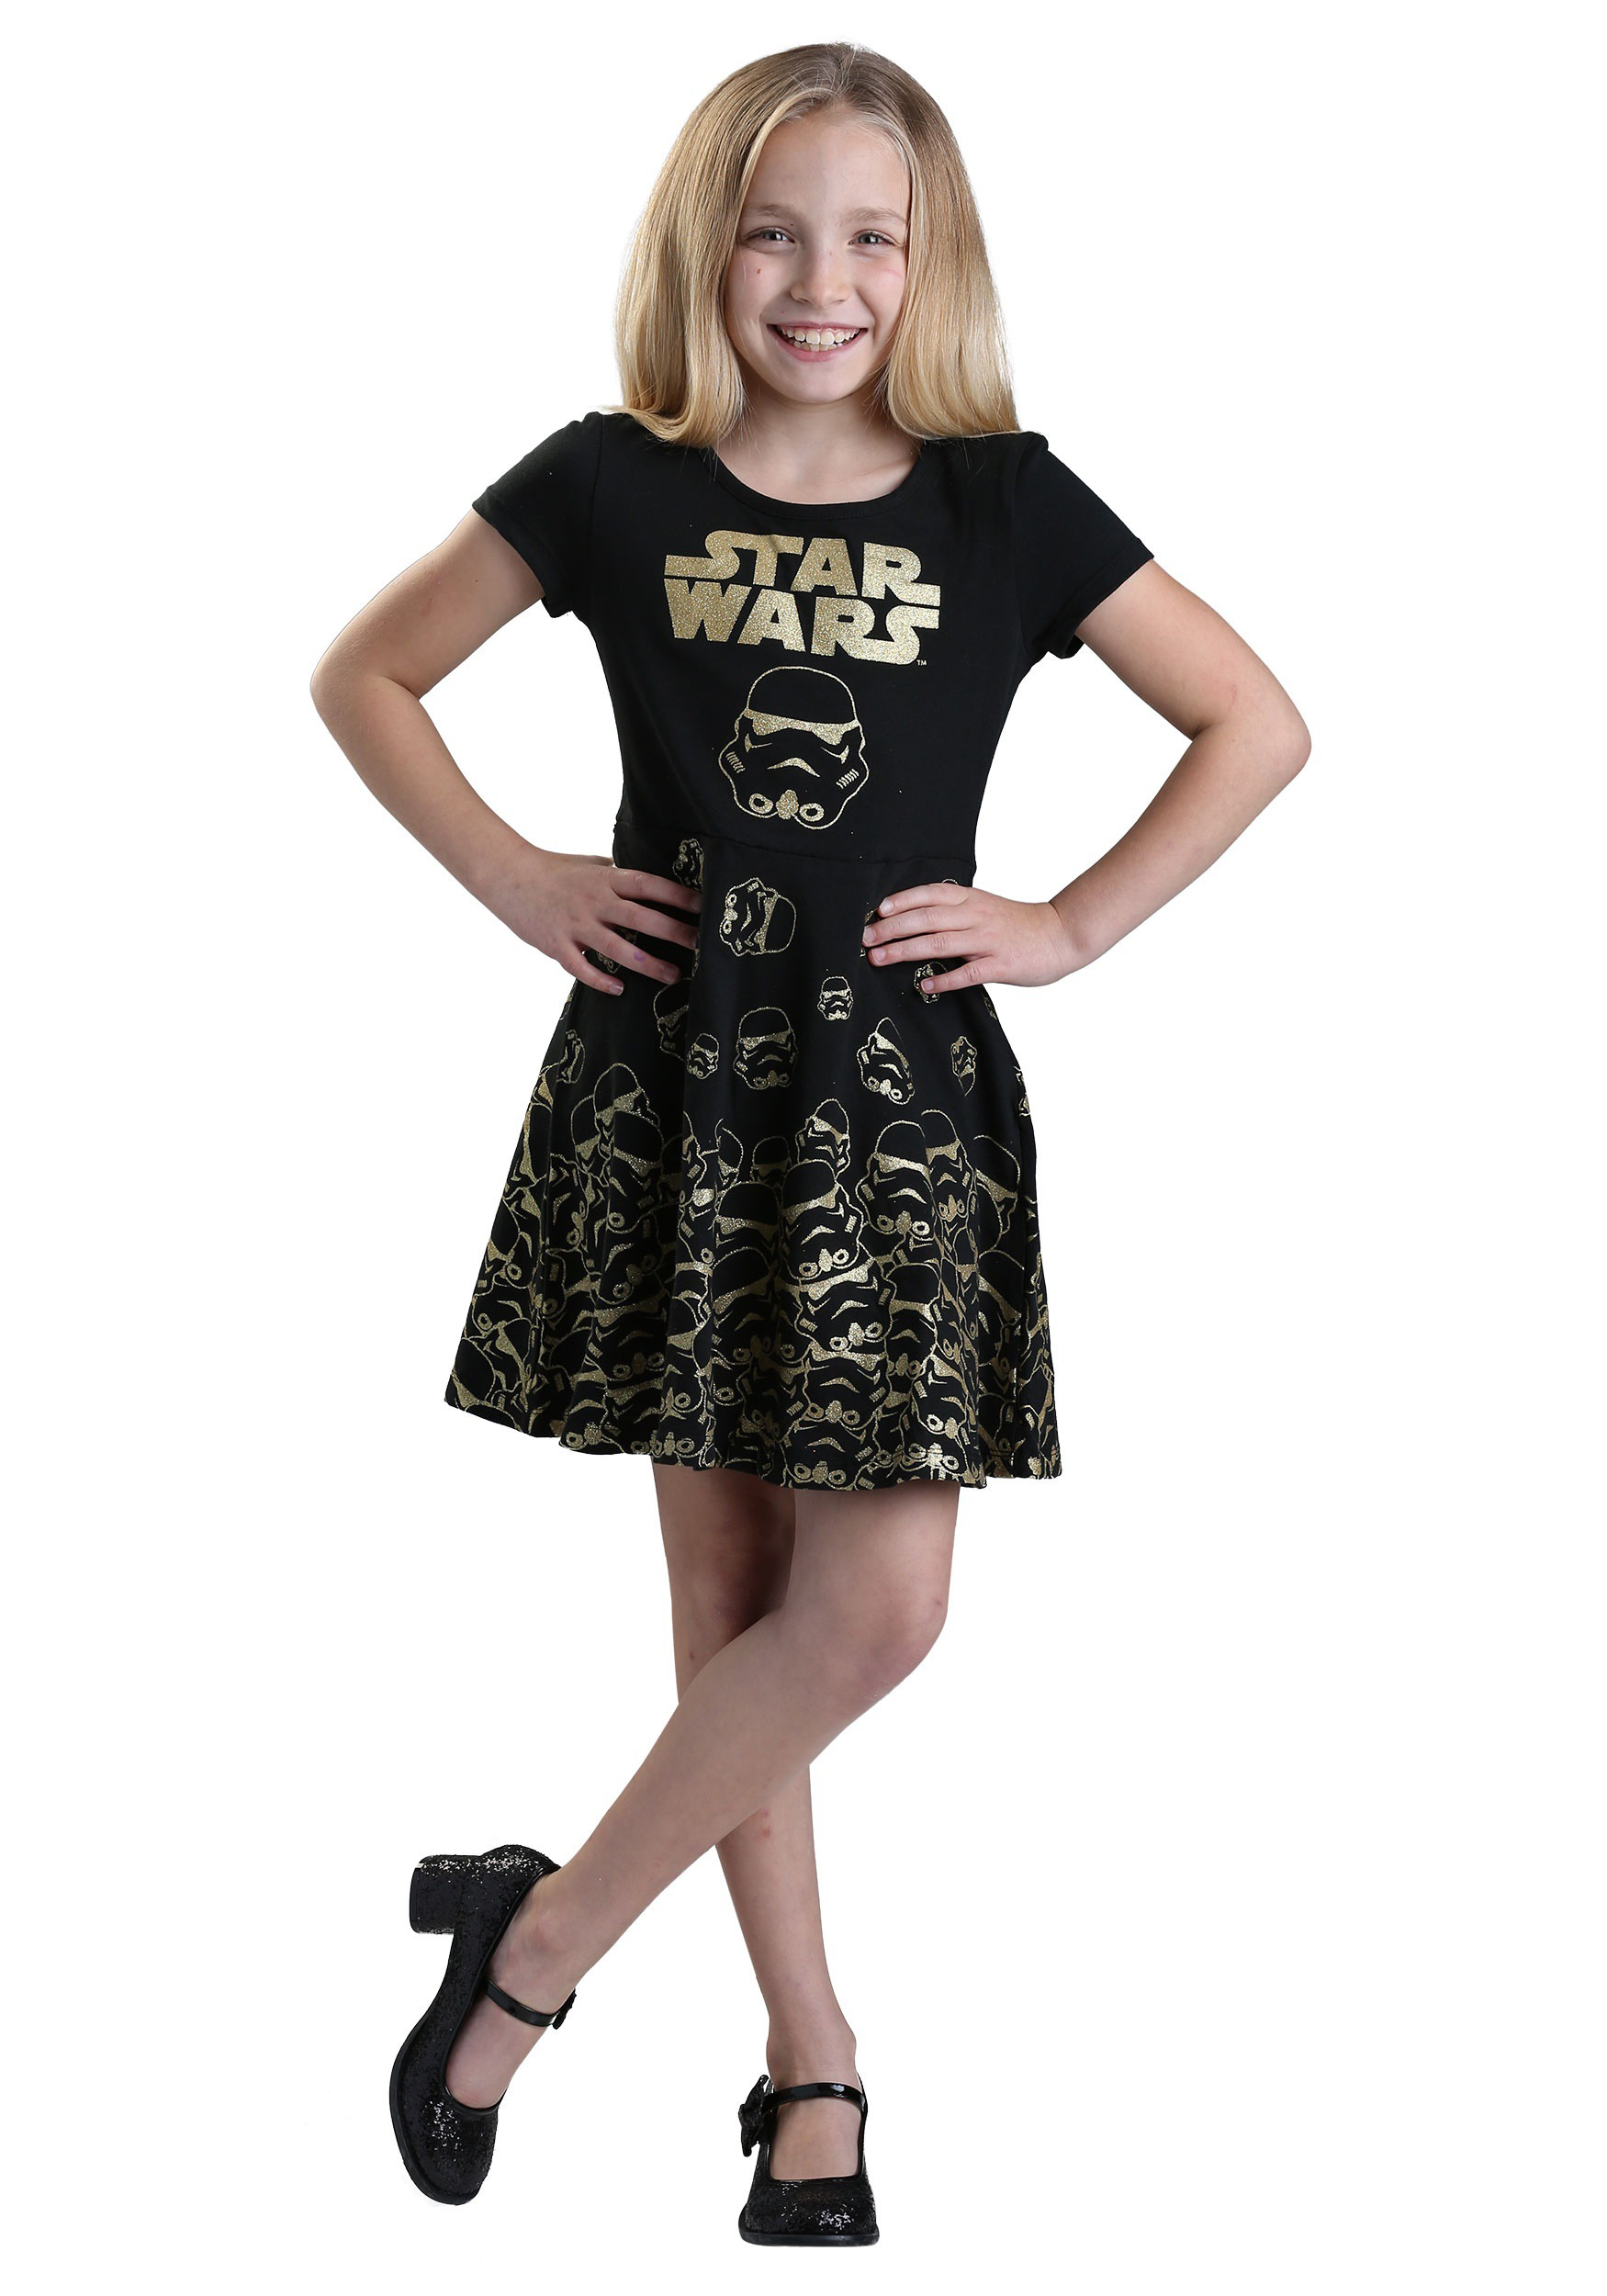 Star Wars Clothing - Star Wars Apparel & Accessories